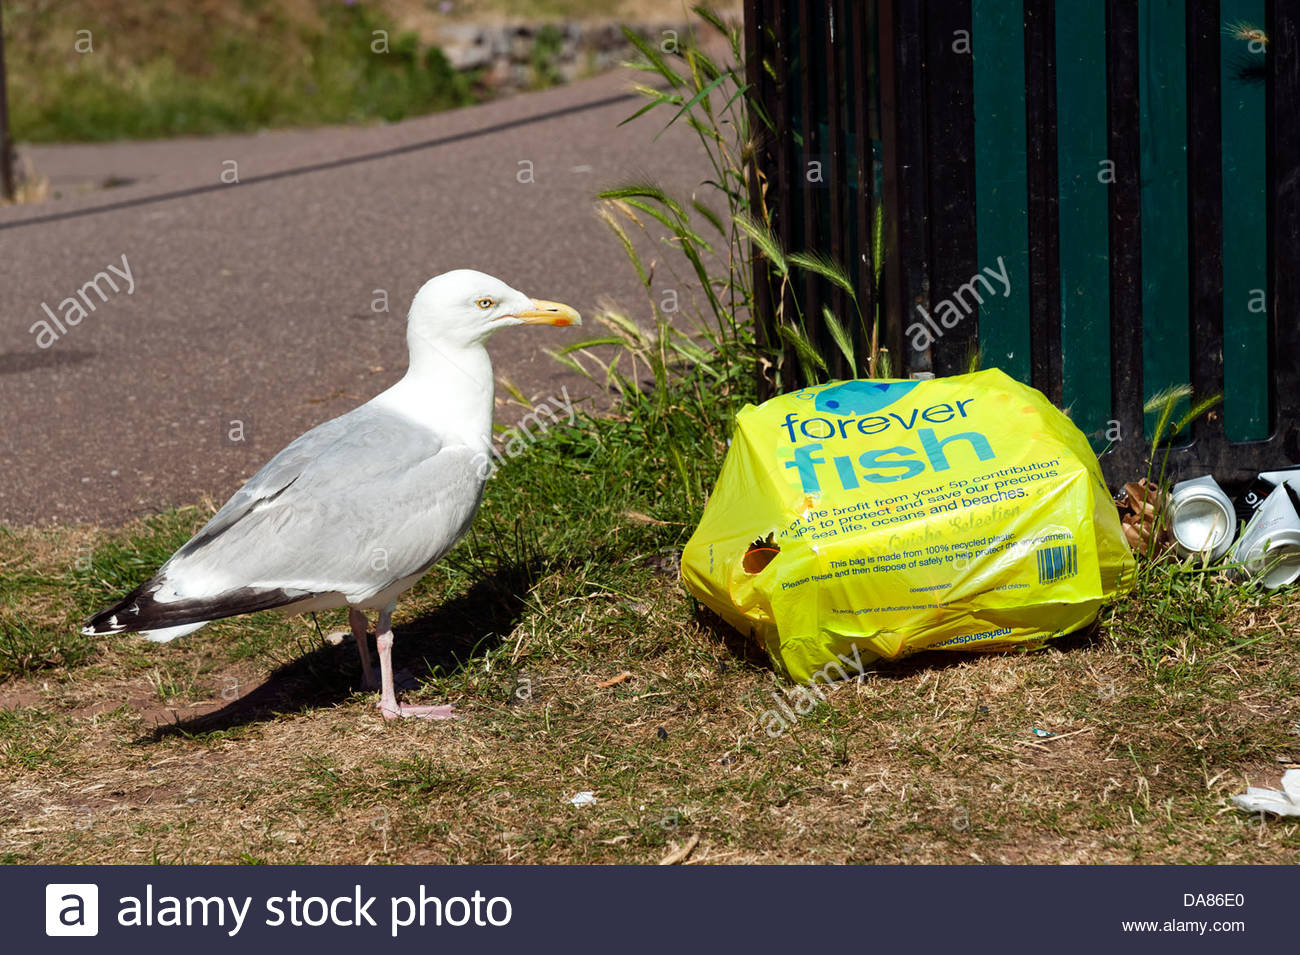 Seagull scavenging litter from a rubbish bag, UK. - Stock Image